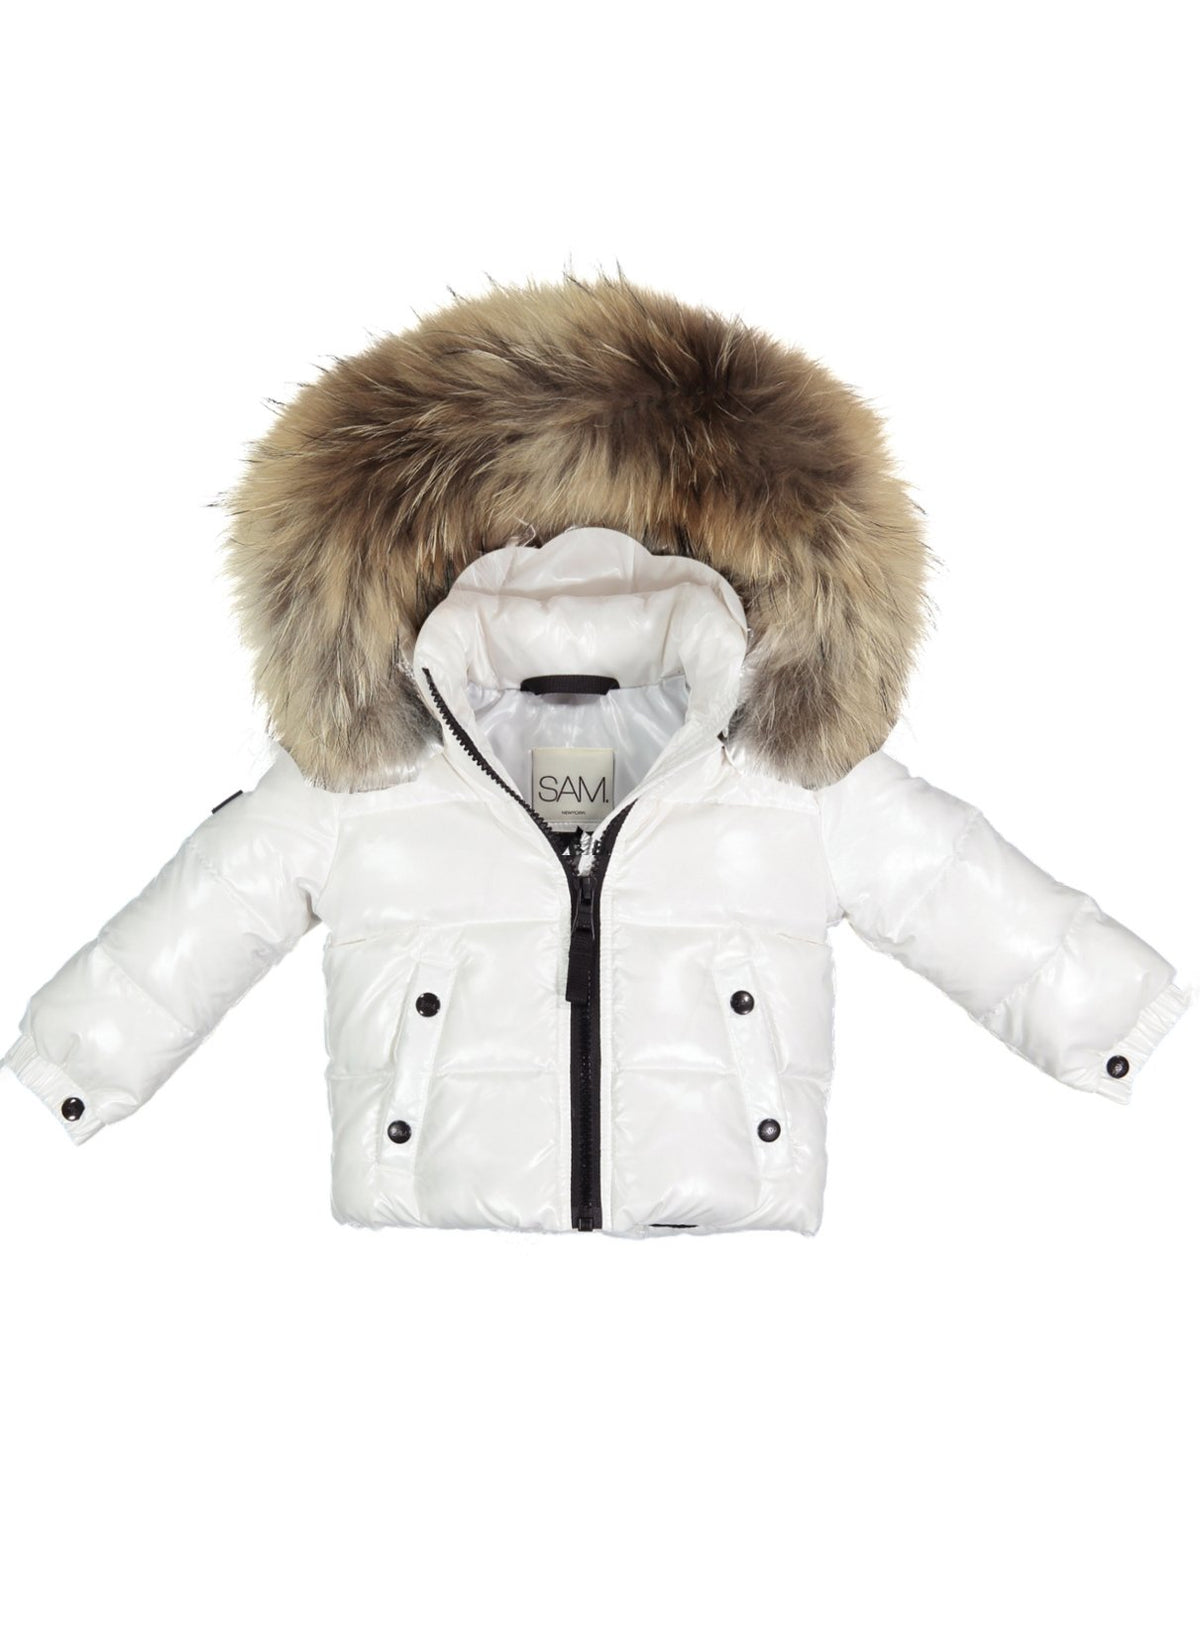 SNOWBUNNY SNOWBUNNY - SAM. New York Sam nyc jacket